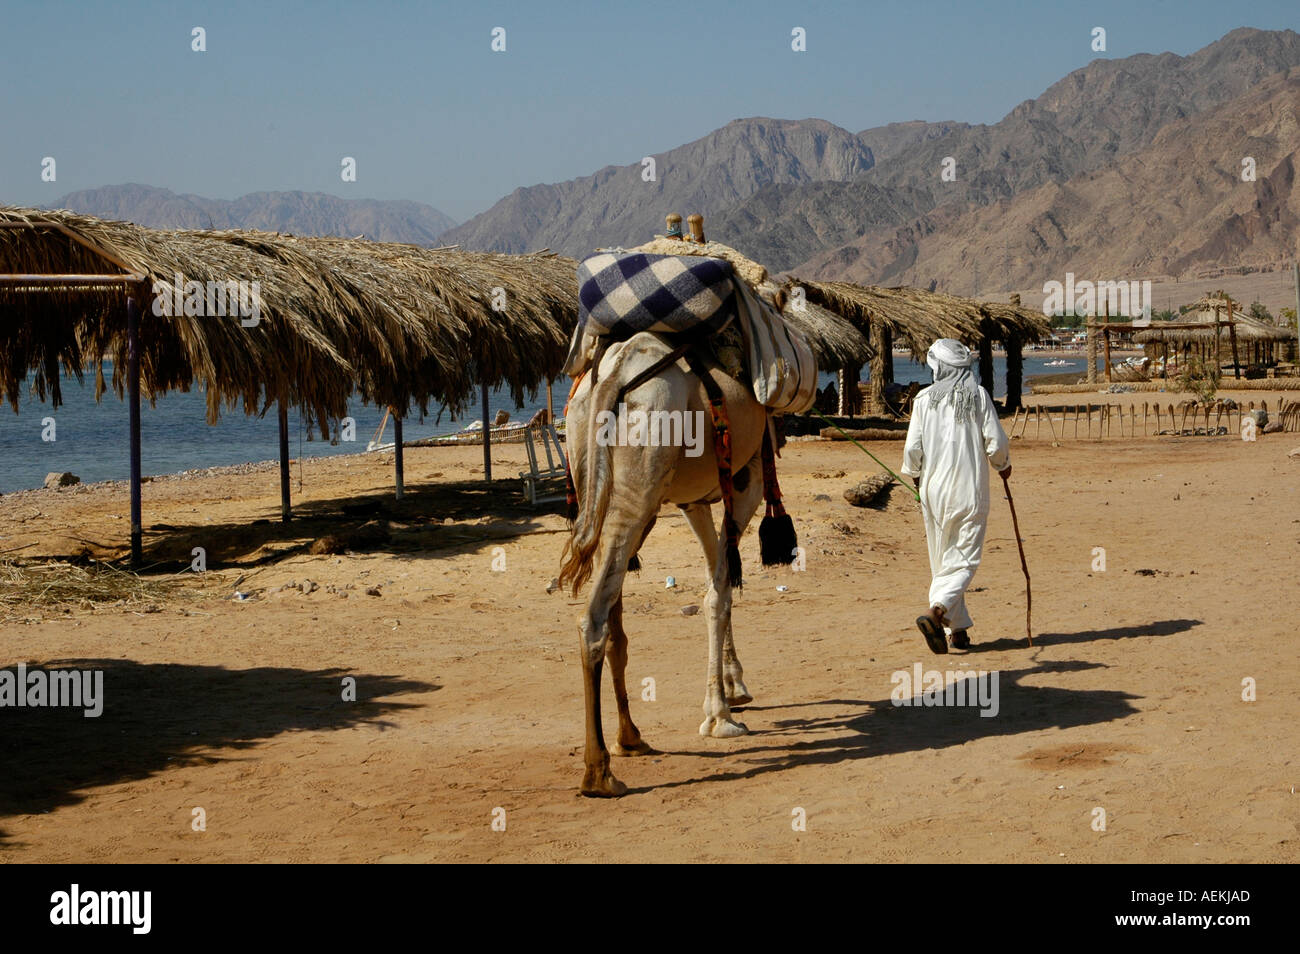 Bedouin native walking with his camel in Nuweiba also spelled: Nueiba a coastal town in the eastern part of Sinai Peninsula, Egypt - Stock Image